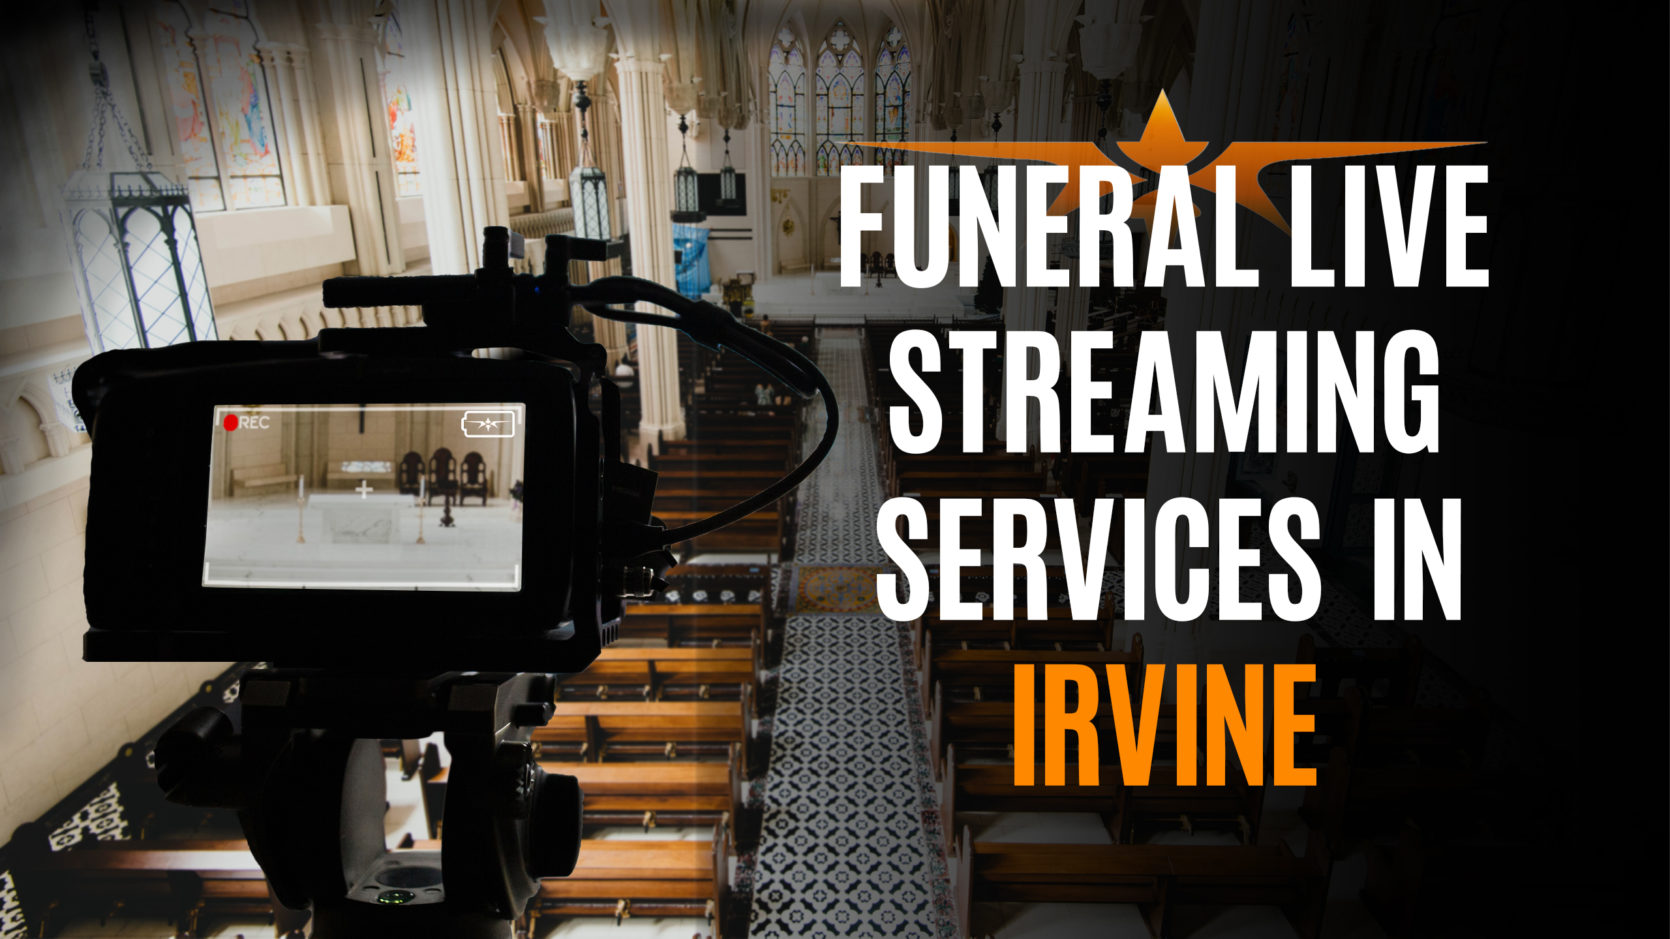 Funeral Live Streaming Services in Irvine